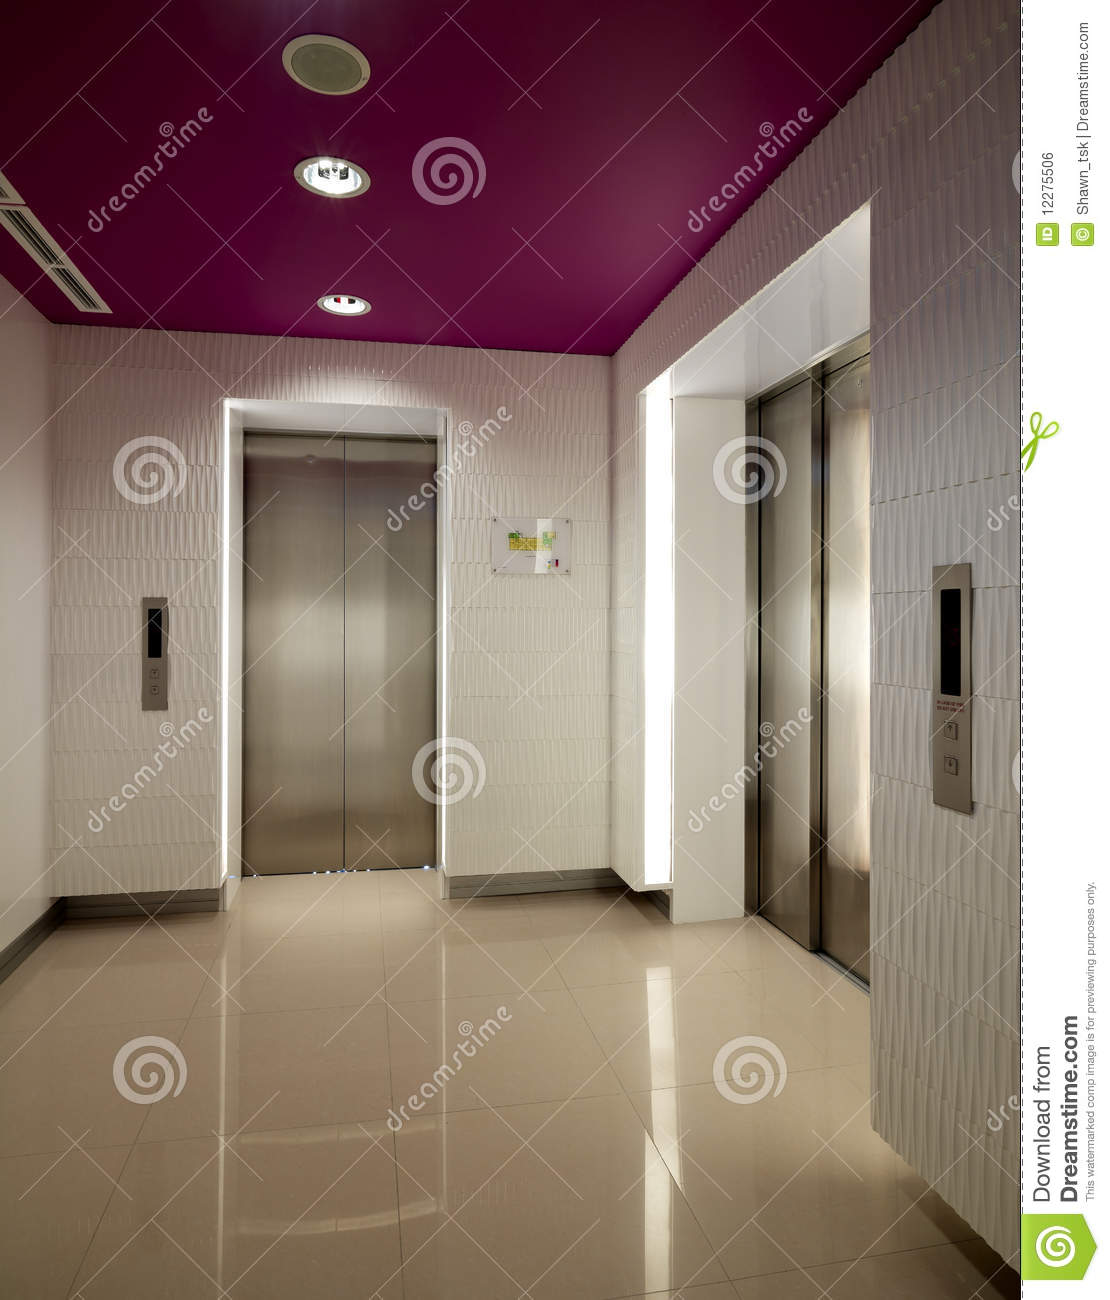 Interior Design Royalty Free Stock Image - Image: 12275506